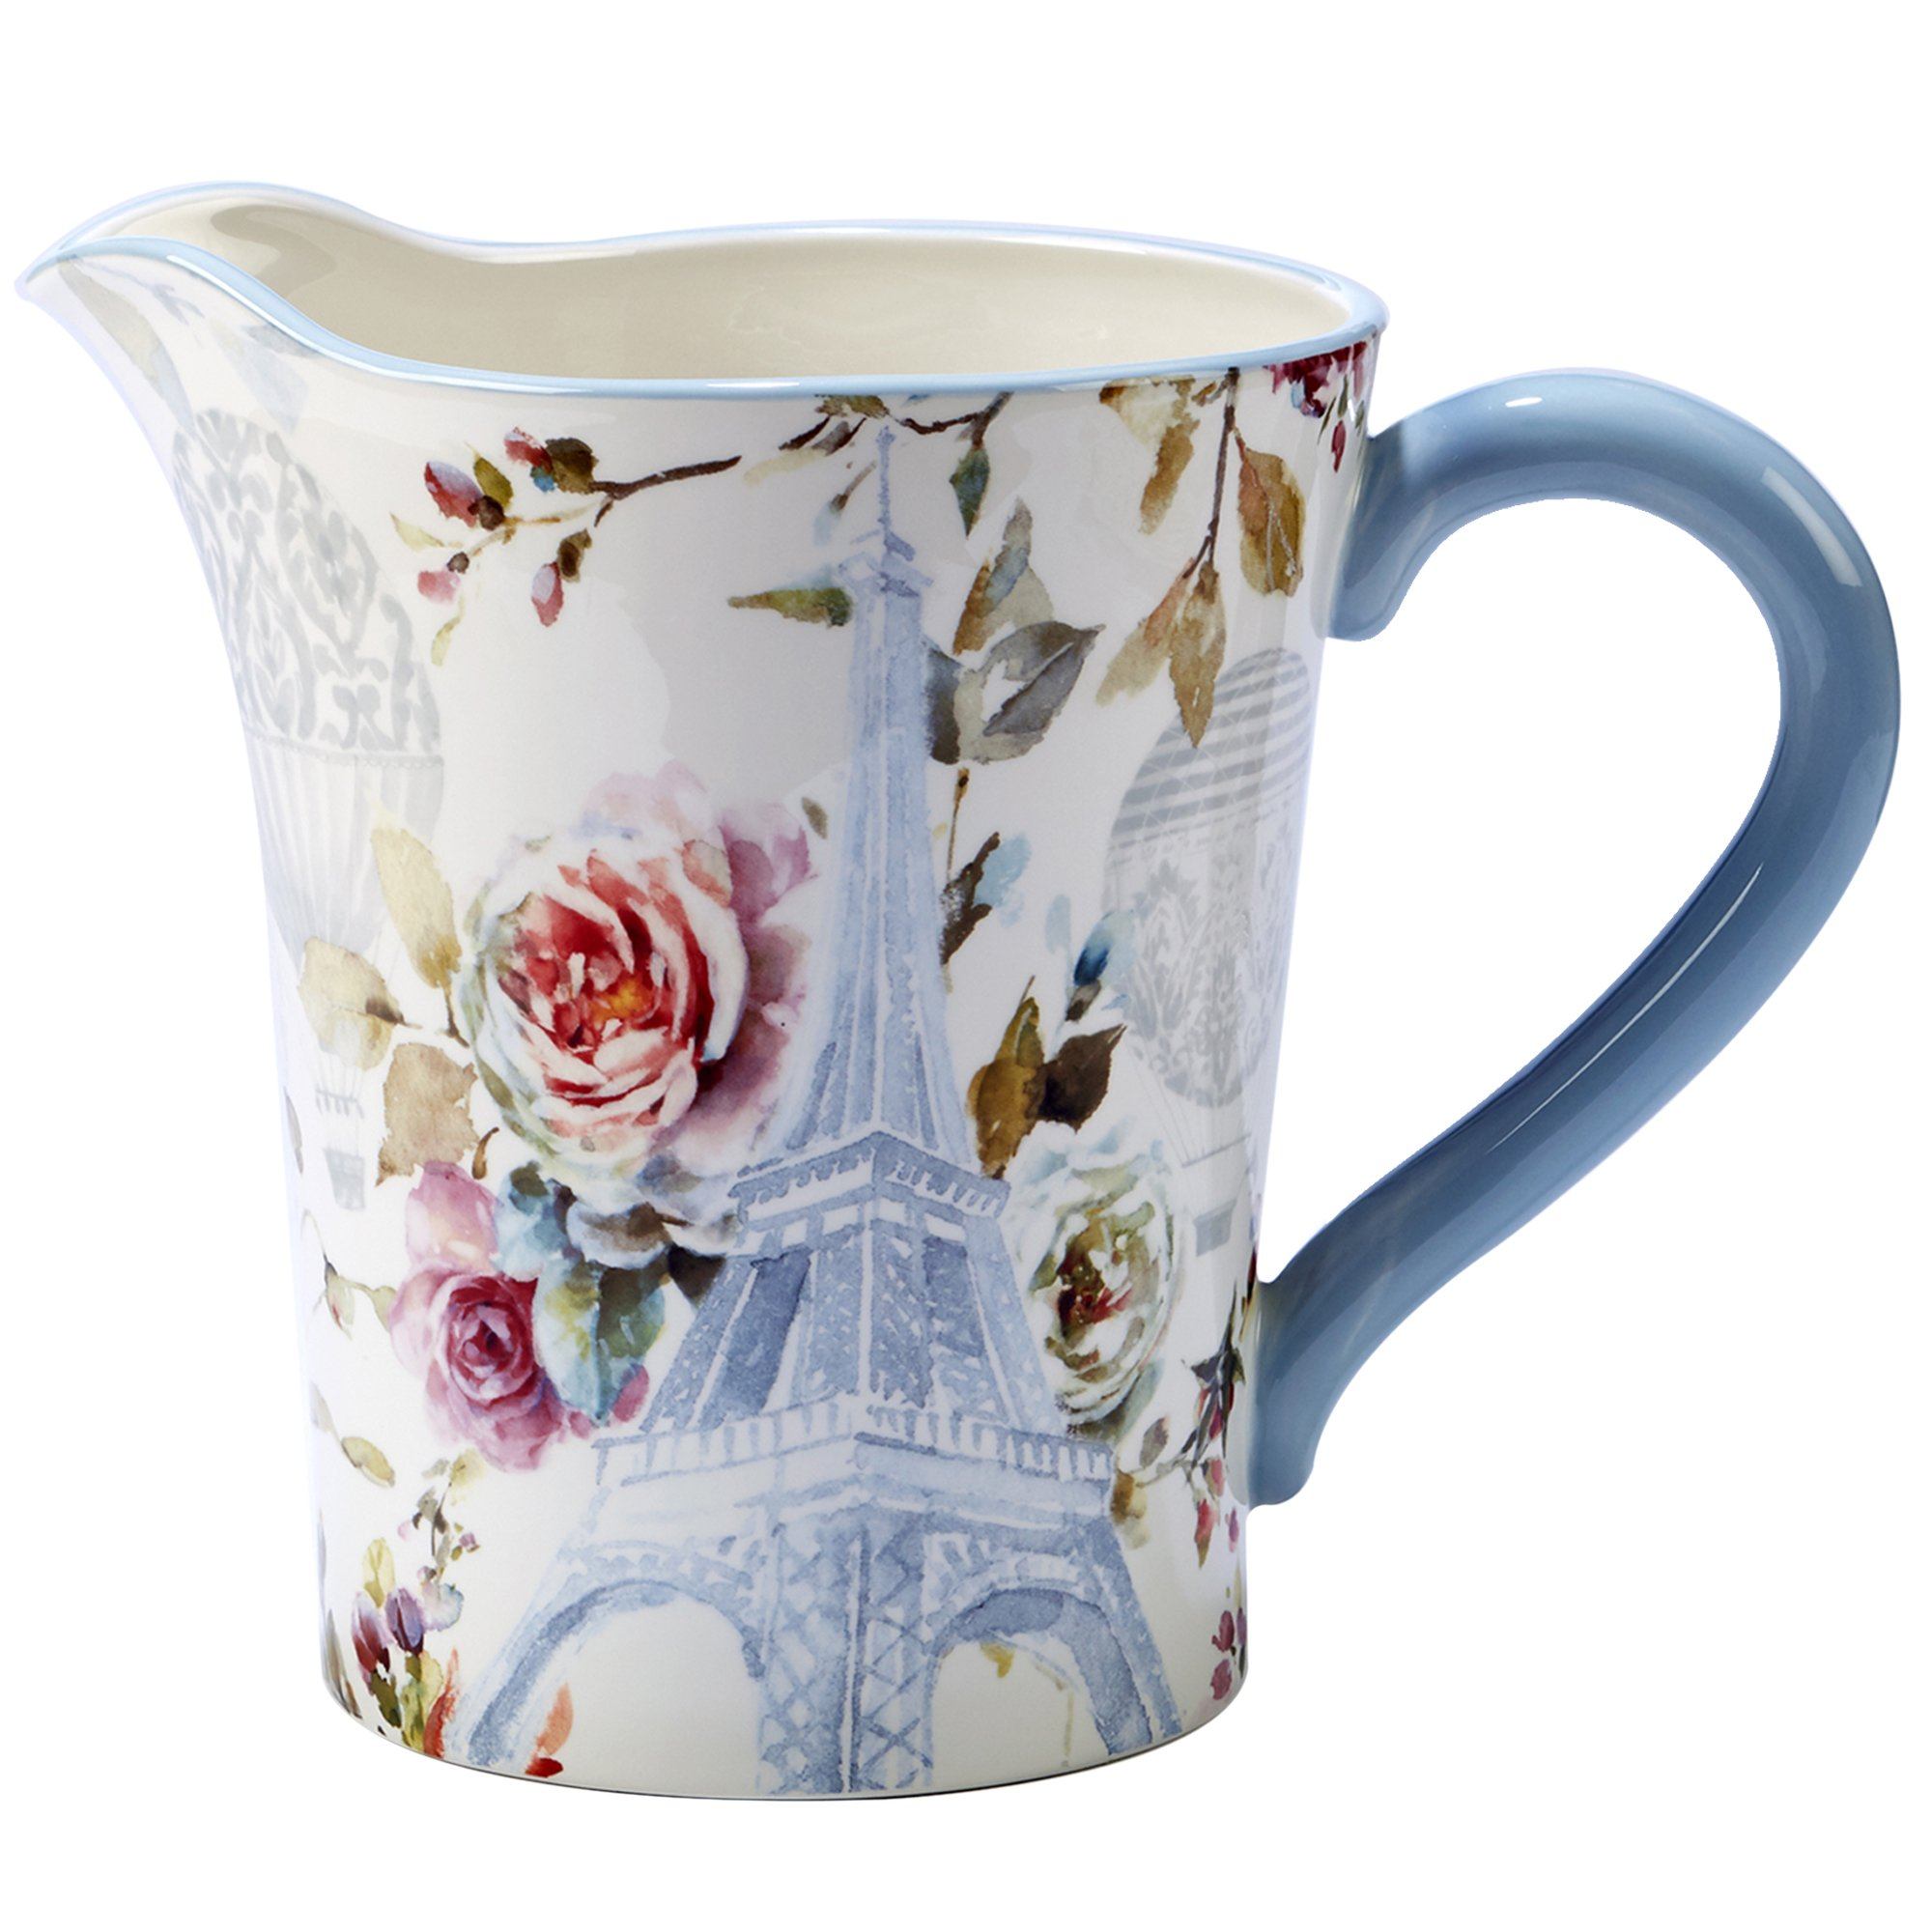 Certified International 23581 Beautiful Romance Ceramic Pitcher, One Size/3.5 quart, Multicolor by Certified International